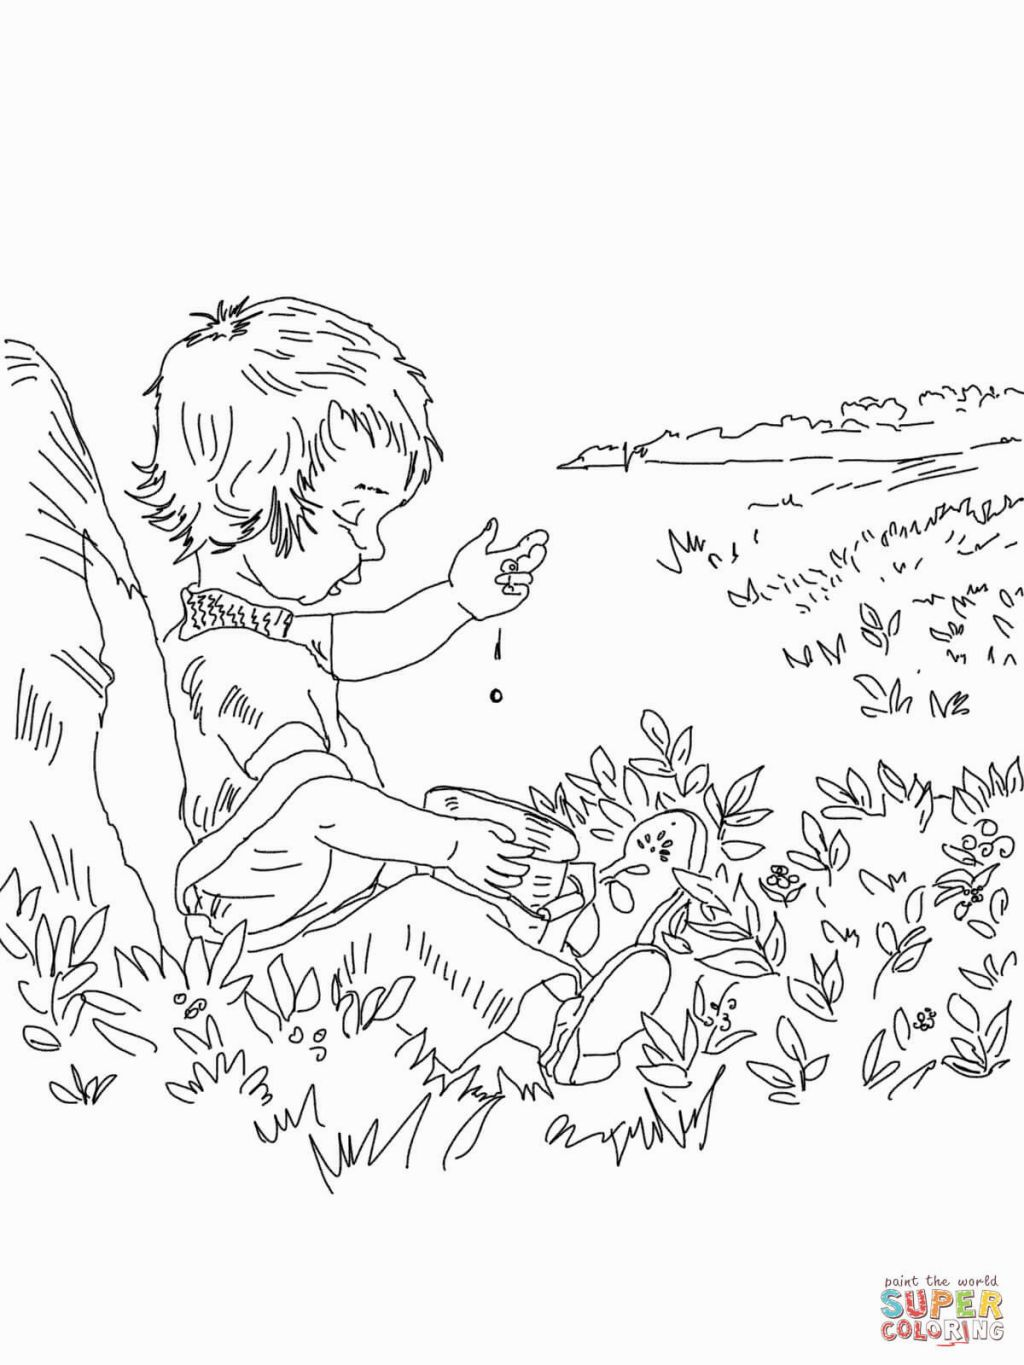 Blueberries For Sal Coloring Page Blueberries For Sal Five In A